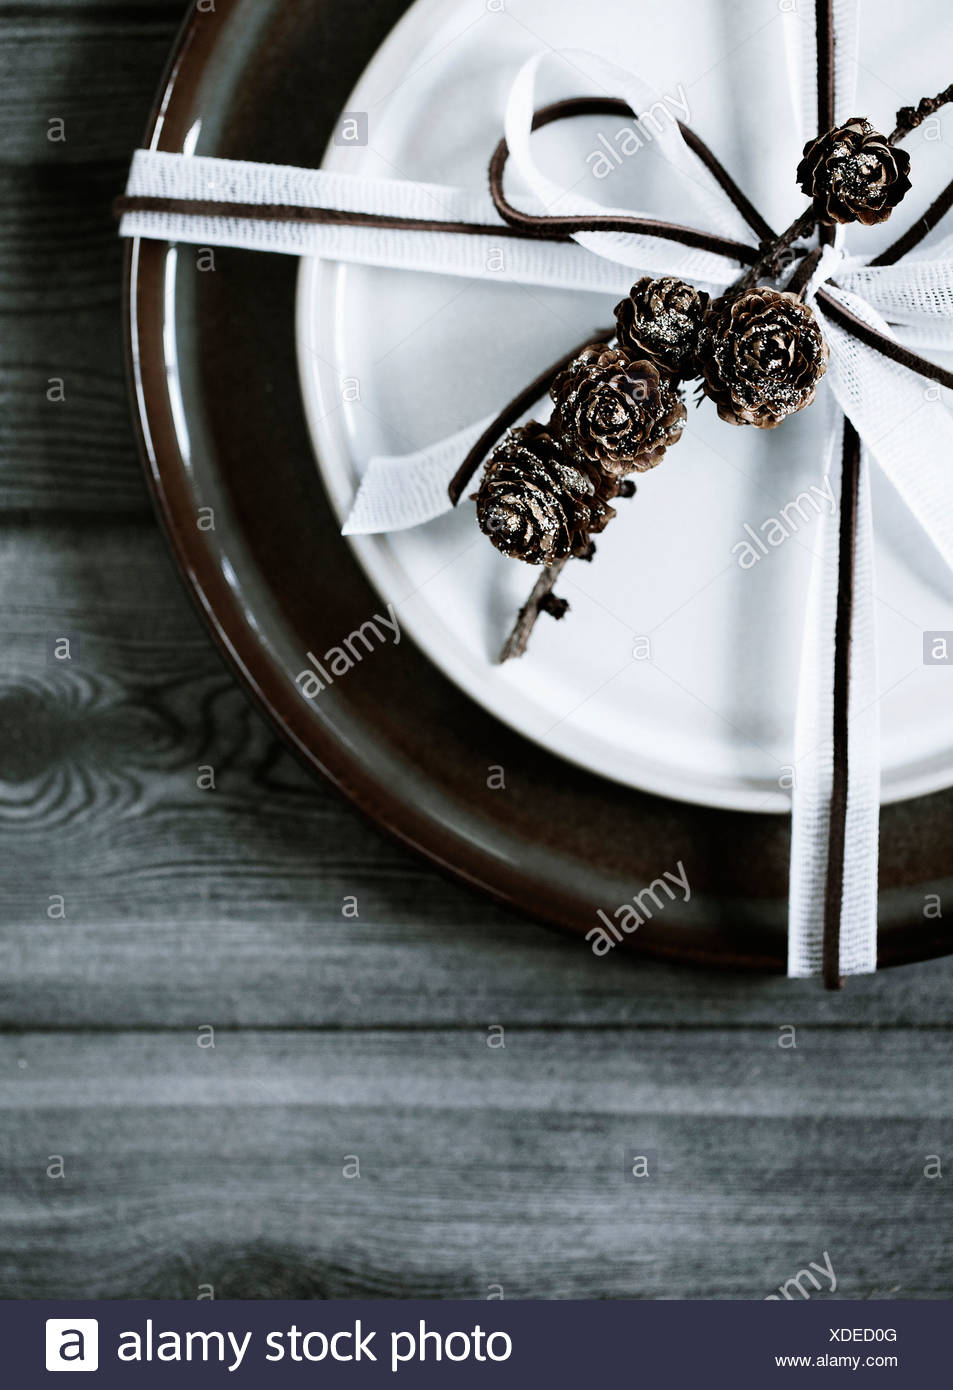 Wrapped plate on wooden table - Stock Image